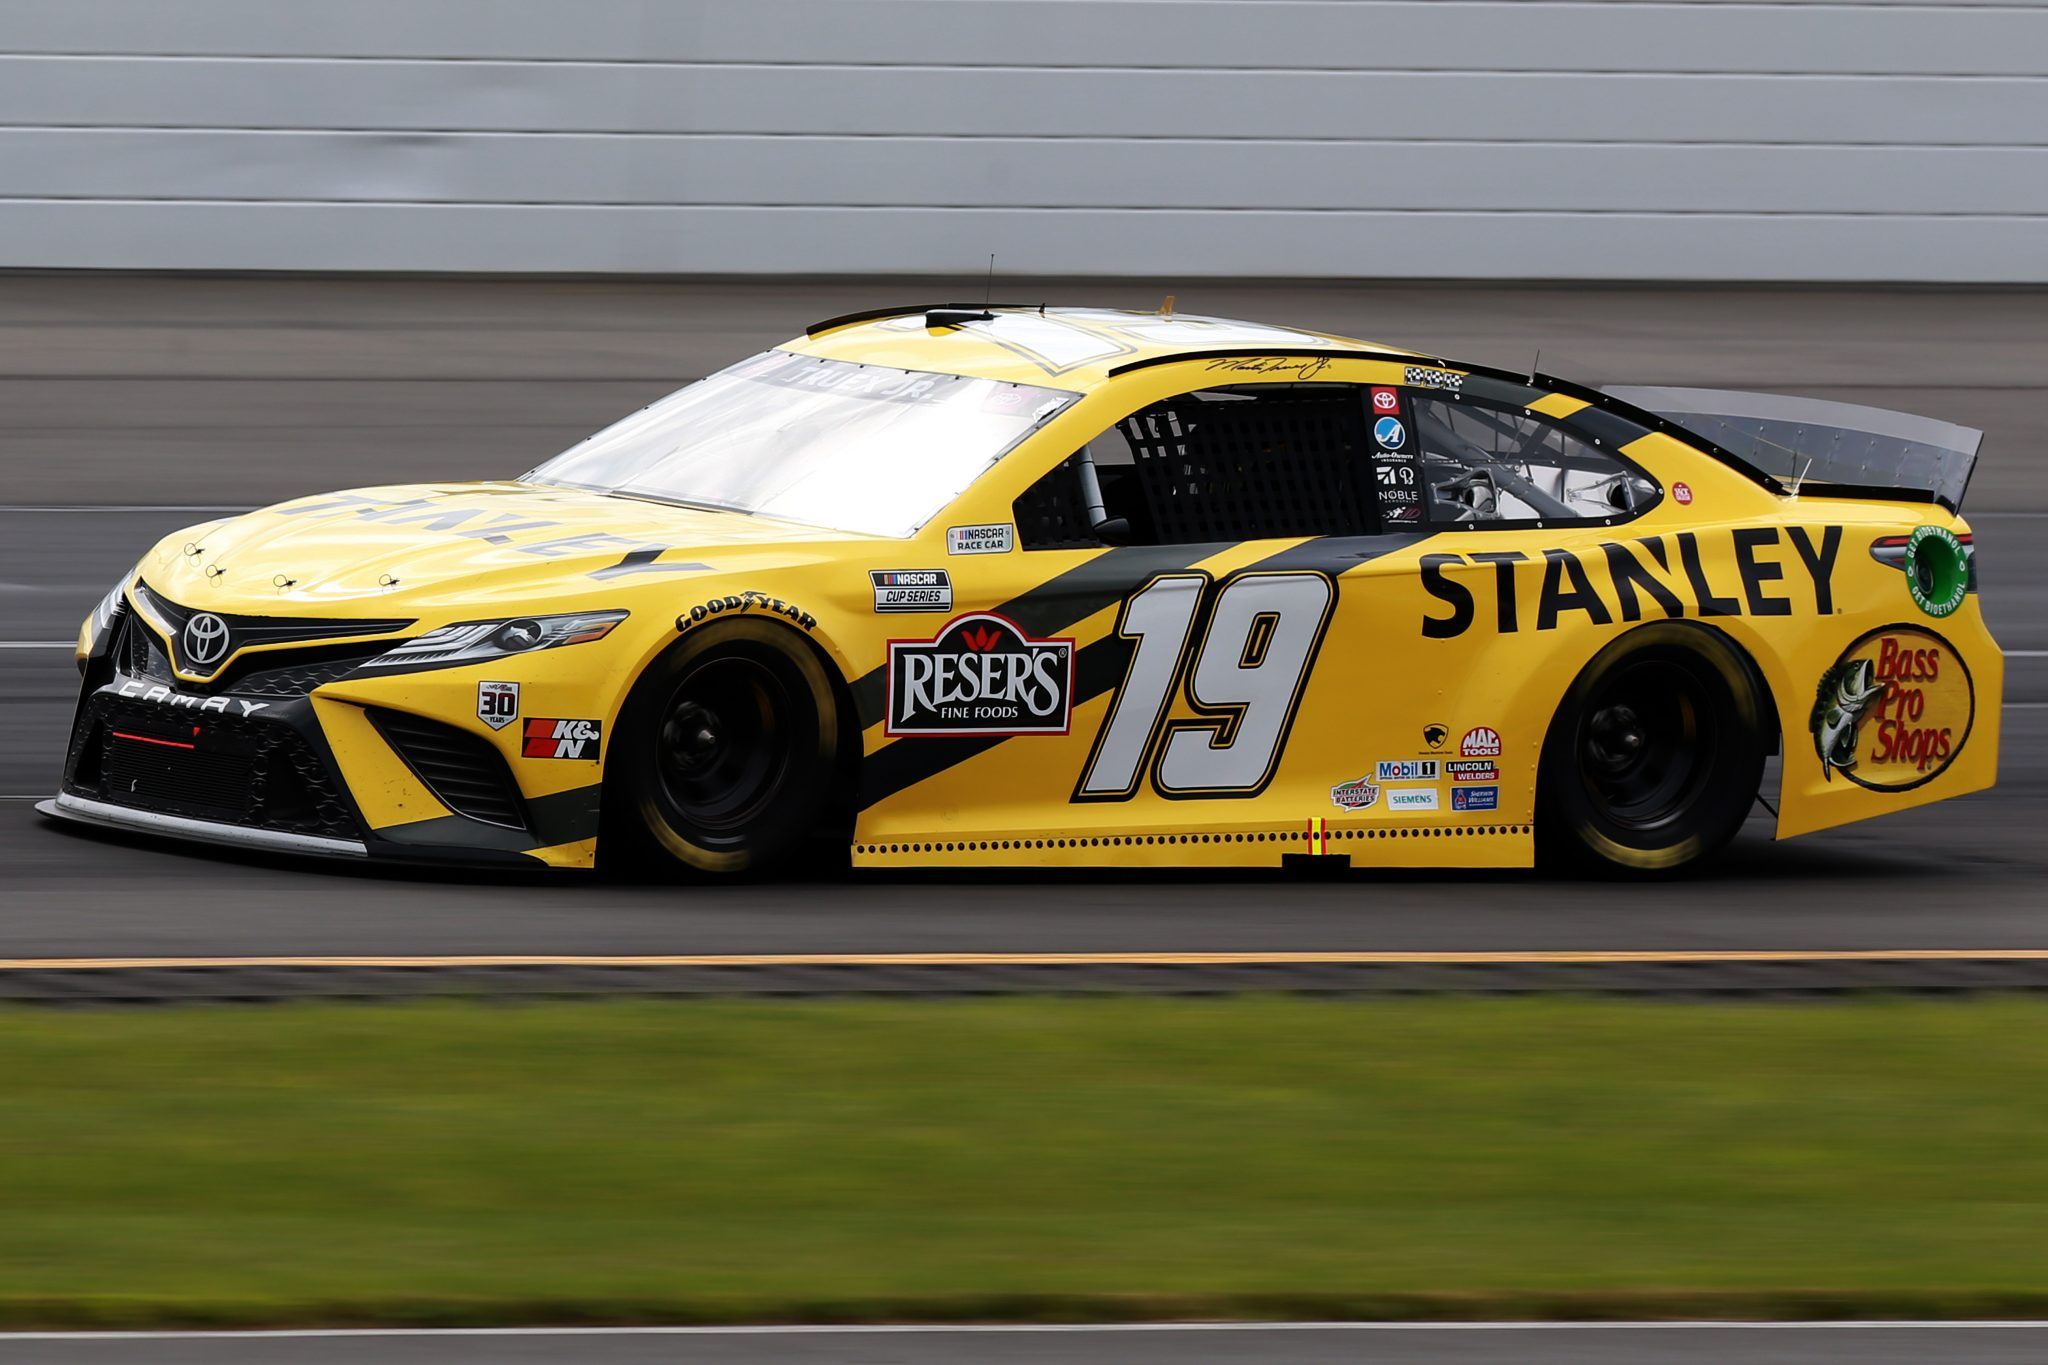 LONG POND, PENNSYLVANIA - JUNE 26: Martin Truex Jr., driver of the #19 STANLEY Toyota, drives during the NASCAR Cup Series Pocono Organics CBD 325 at Pocono Raceway on June 26, 2021 in Long Pond, Pennsylvania. (Photo by Sean Gardner/Getty Images) | Getty Images